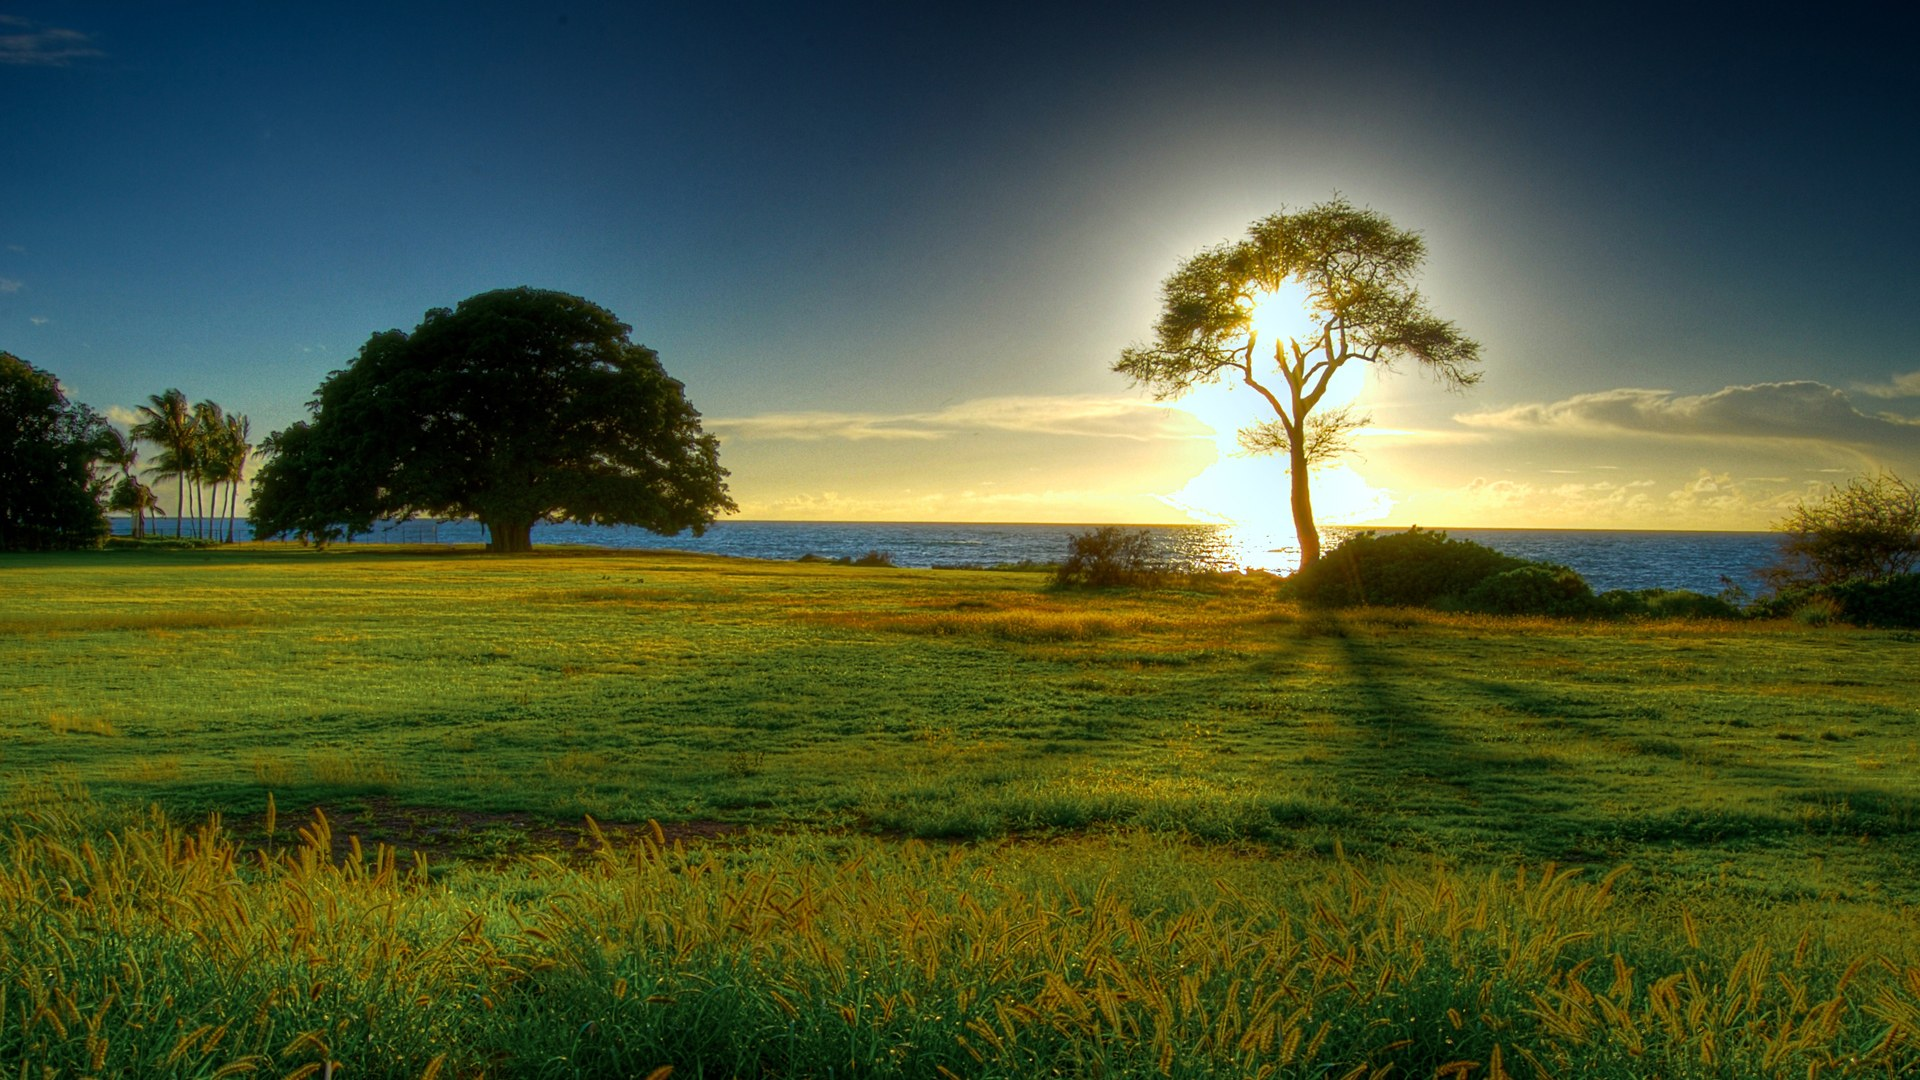 Beautiful Nature Wallpapers for Background HD Wallpaper of Nature 1920x1080